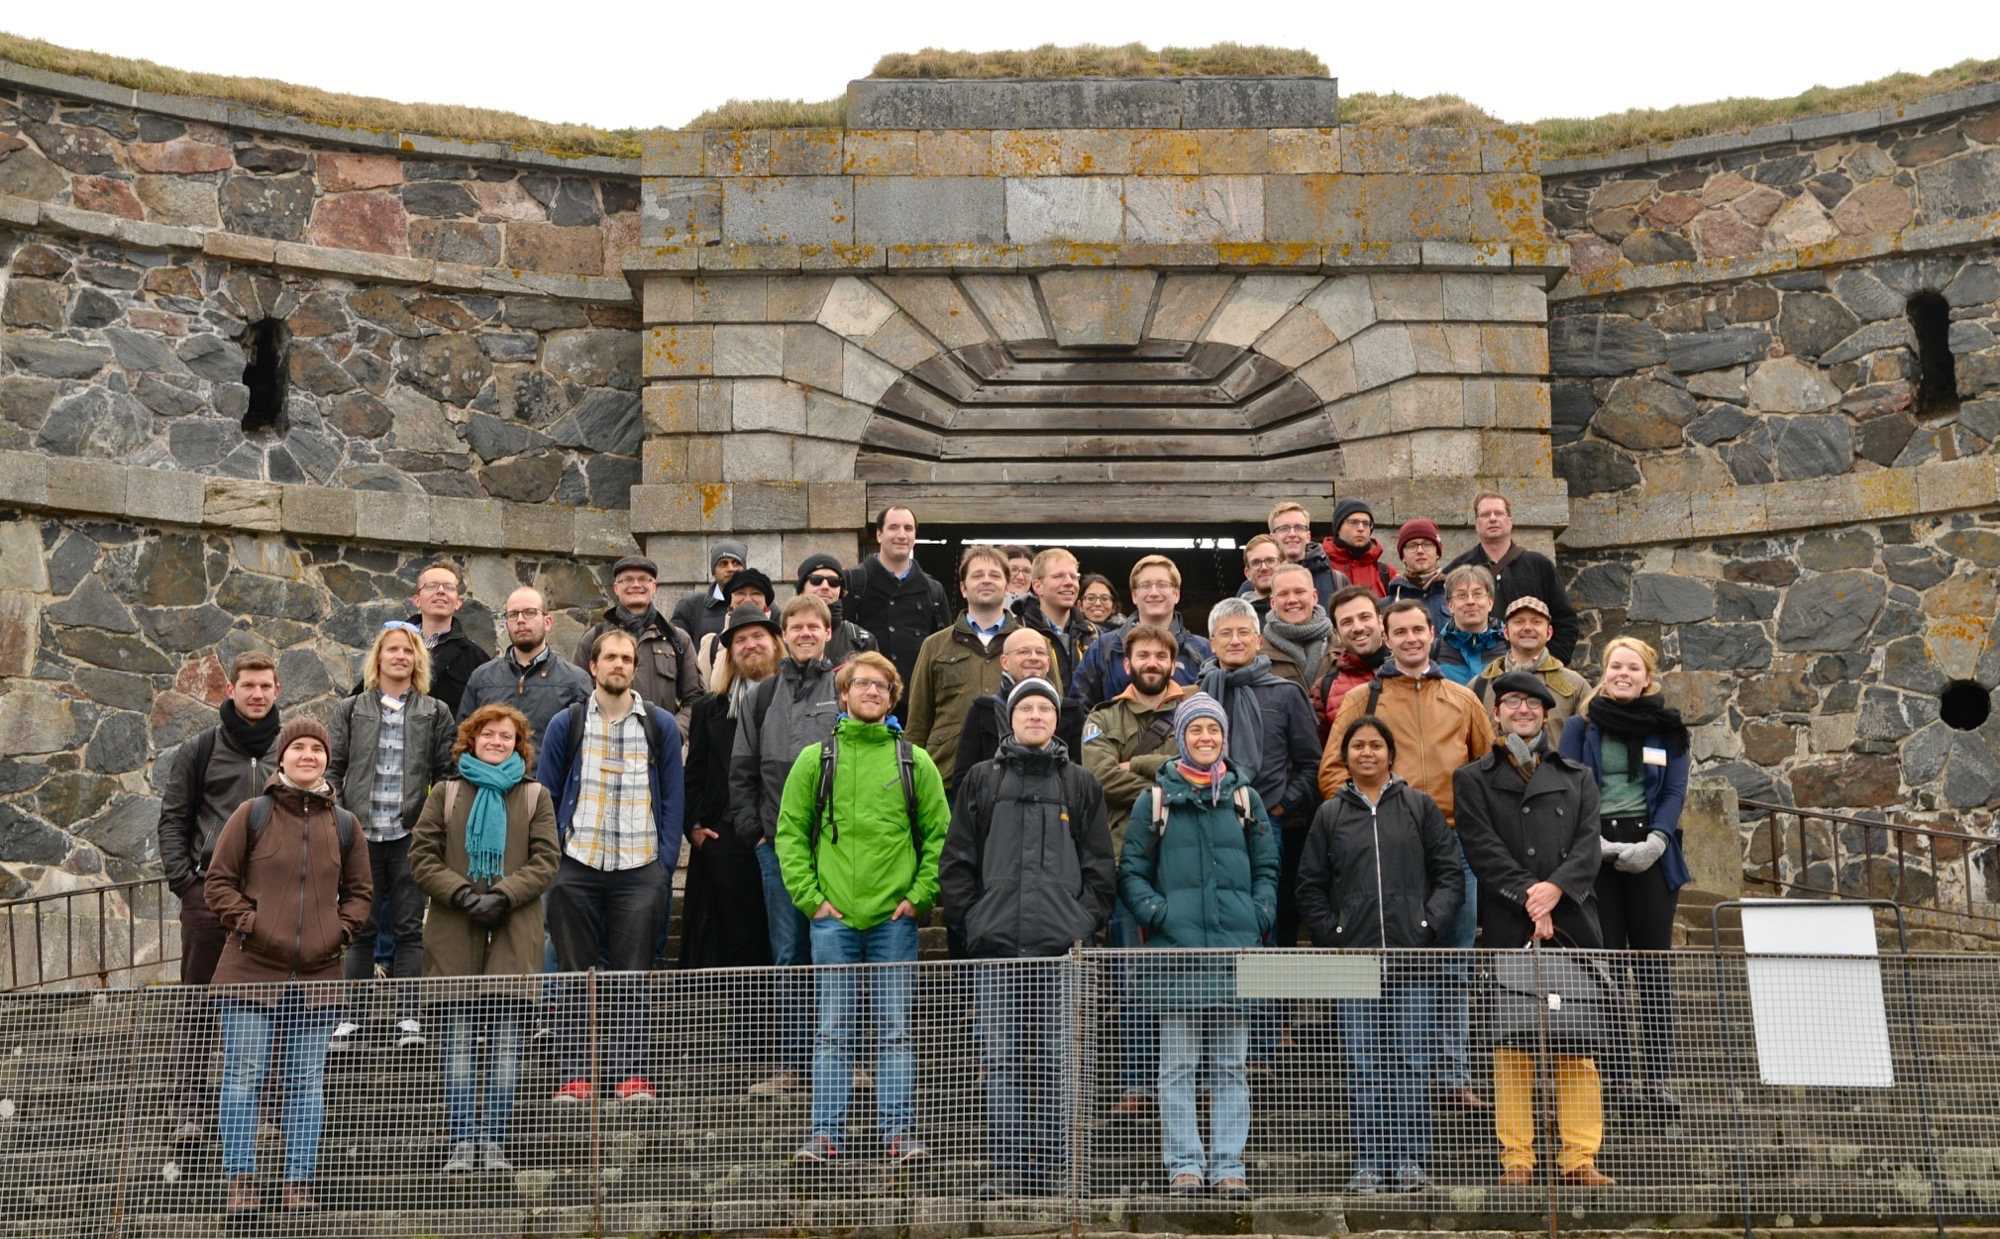 JetMET conference photo at King's Gate, Suomenlinna